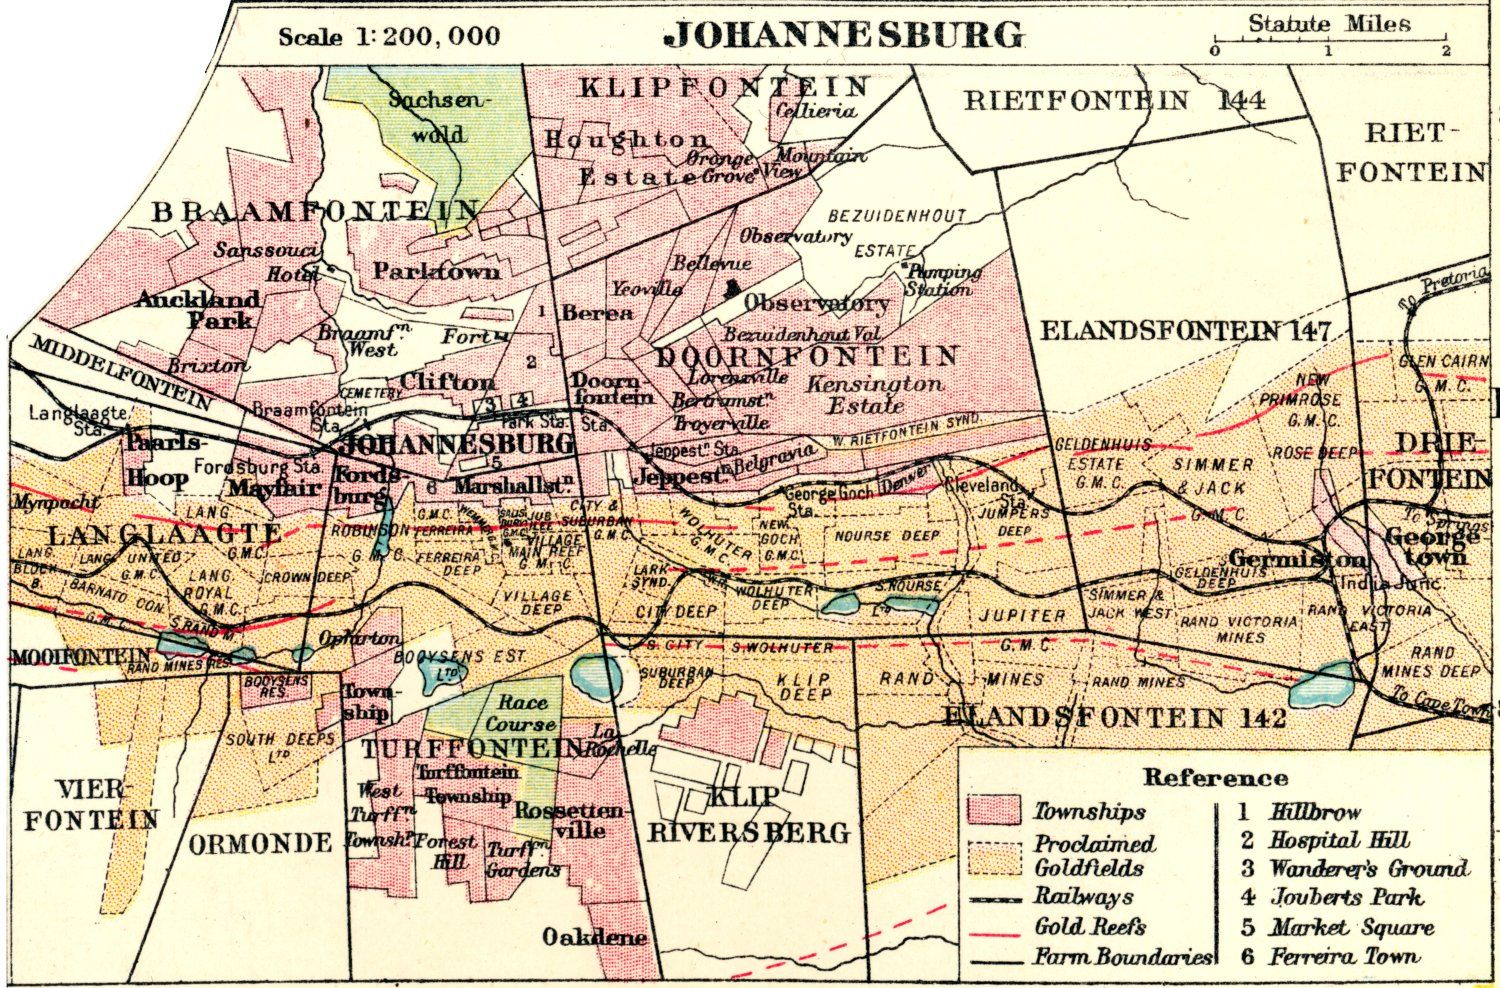 Map of johannesburg 1907 johannesburg the past and the present map of johannesburg 1907 gumiabroncs Choice Image